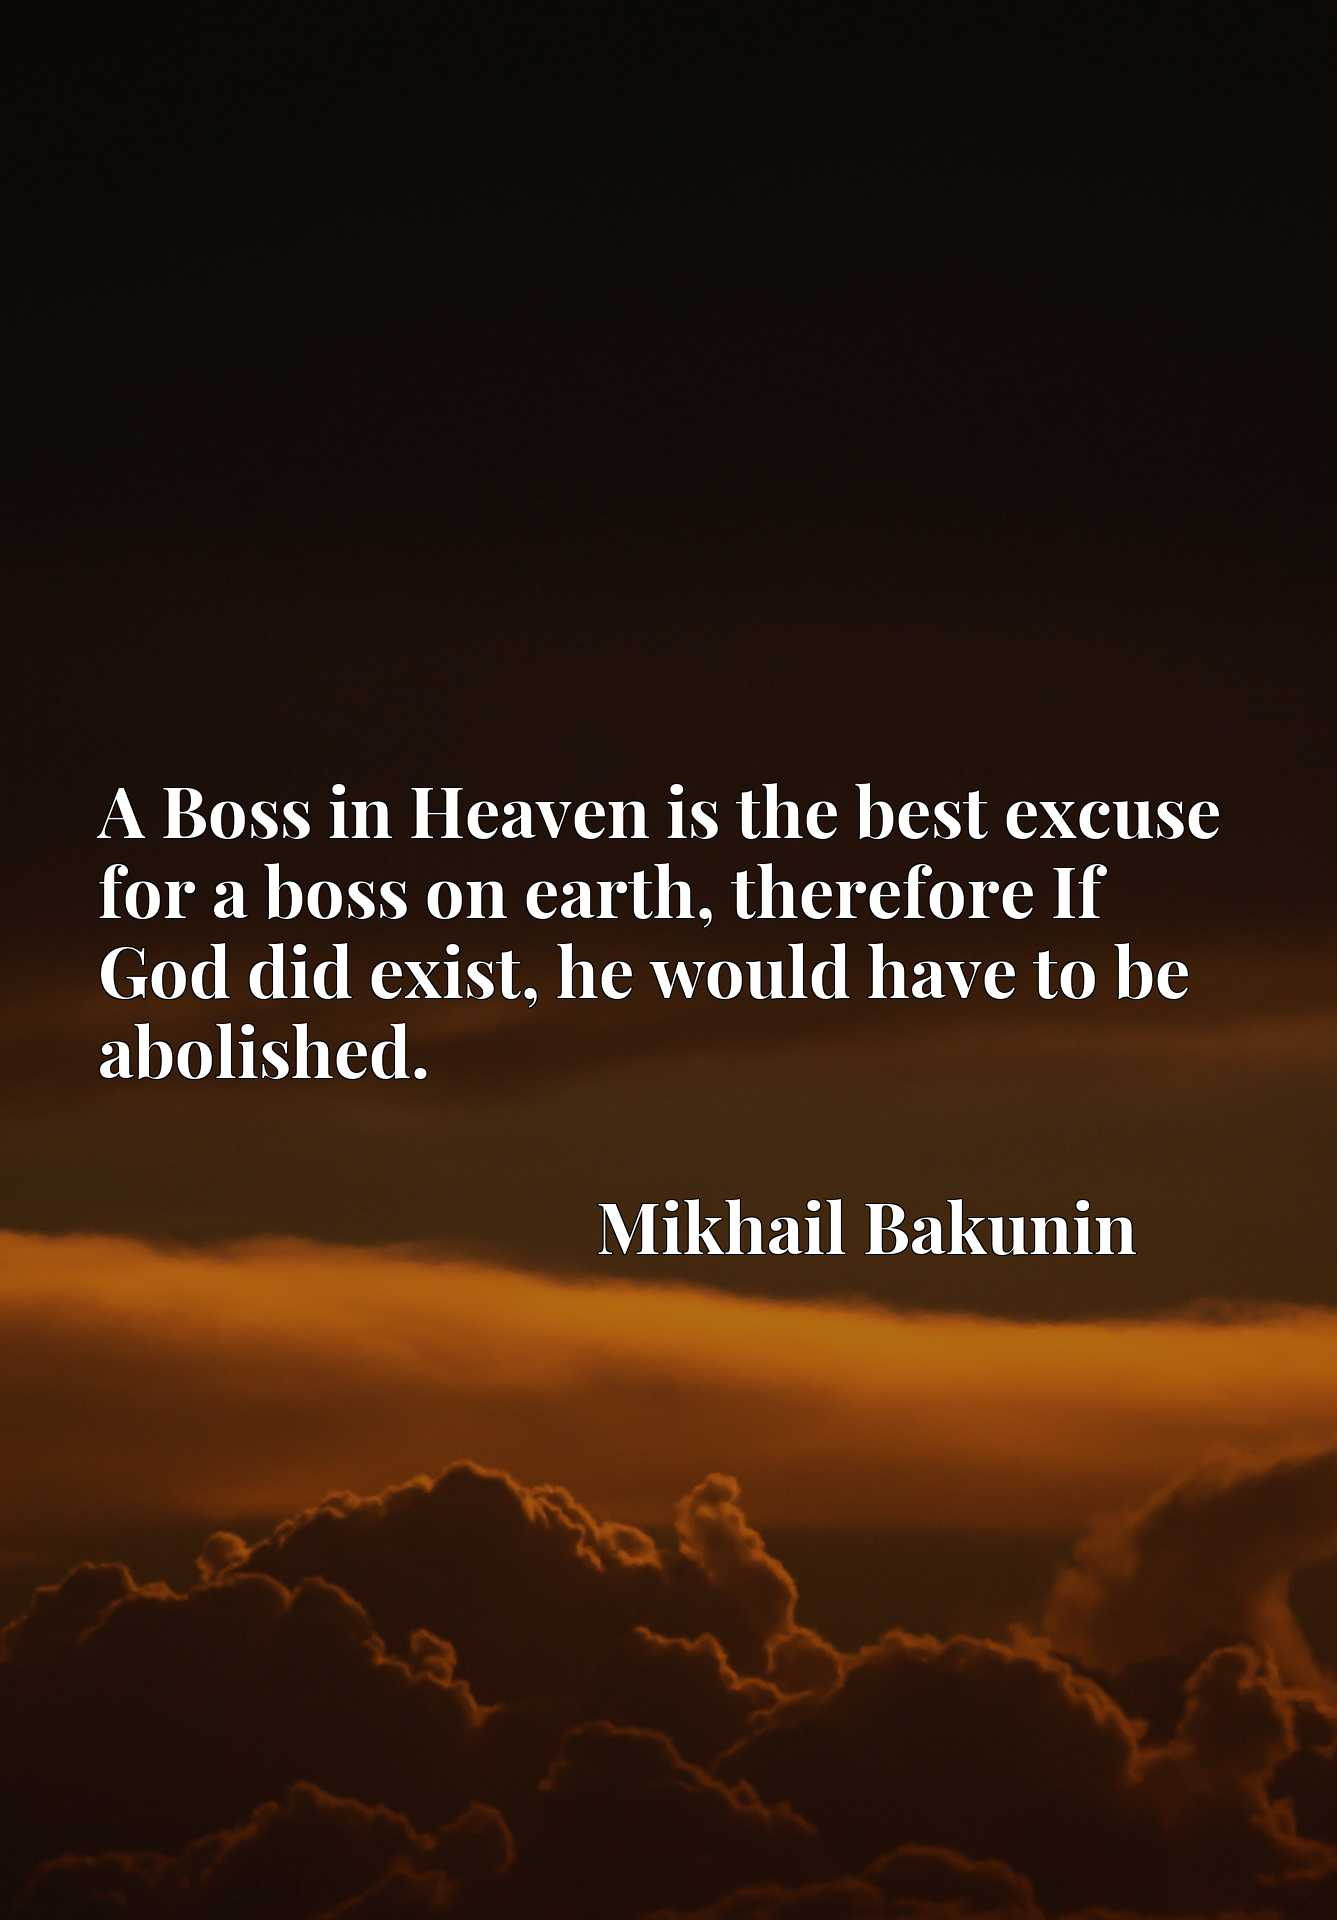 A Boss in Heaven is the best excuse for a boss on earth, therefore If God did exist, he would have to be abolished.